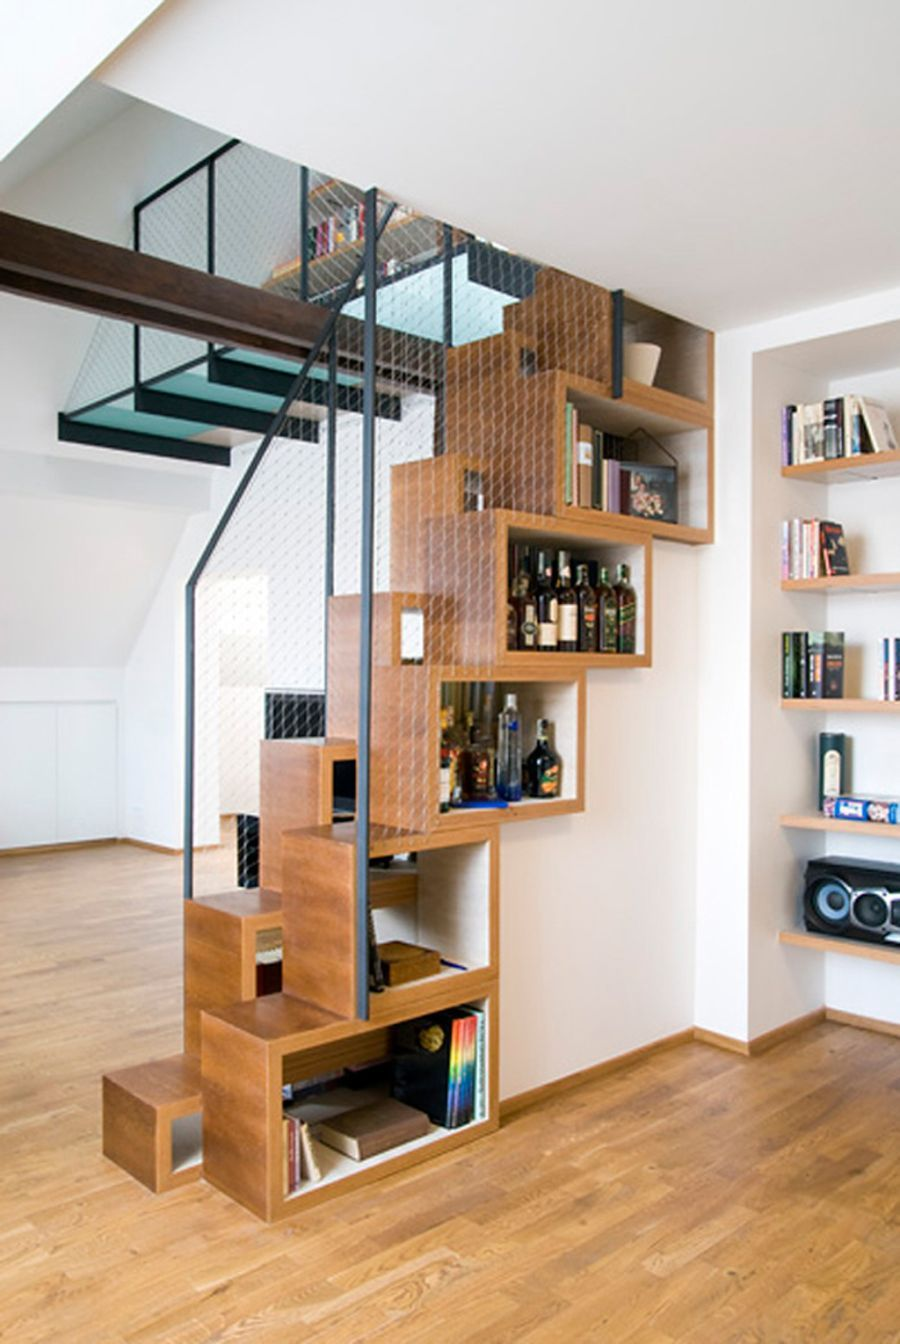 Attractive Interior Designs:Staircase Design That Will Make Your Home Looks Amazing! Staircase  Design With Storage